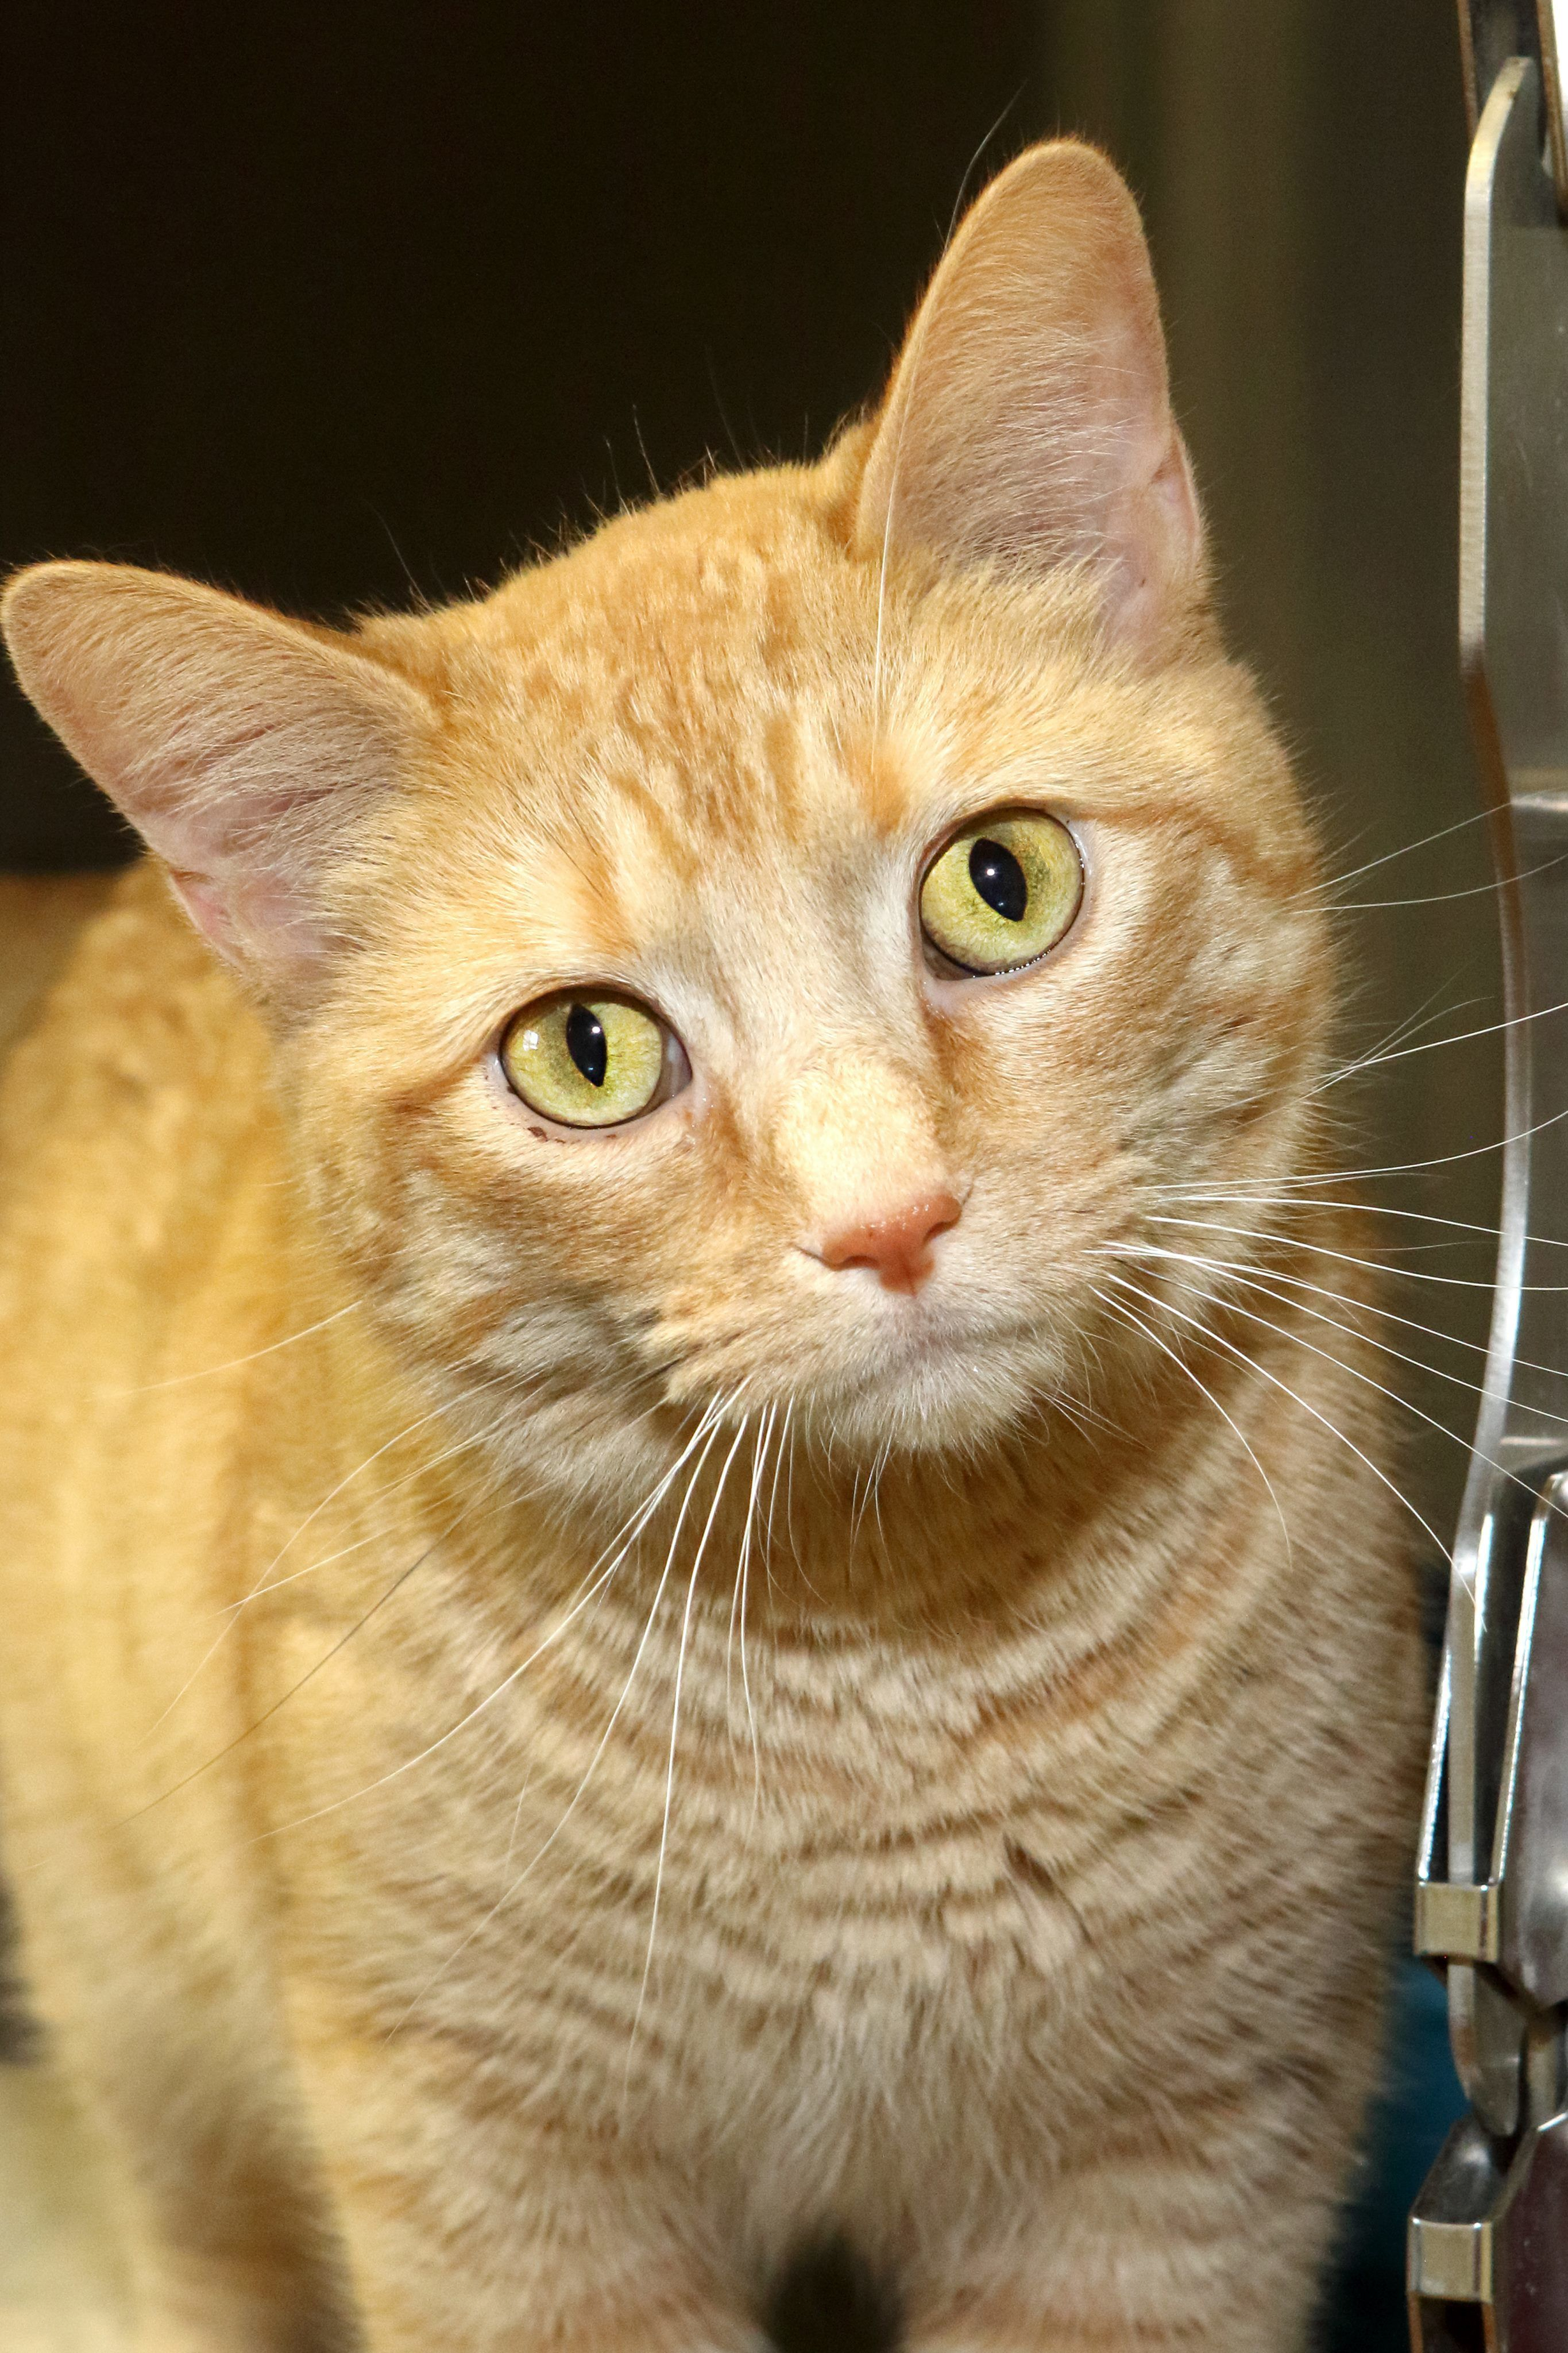 Mews Tabby Female Adult Mower County Humane Society Austin Mn Orange Tabby Cats Cats Cute Cats